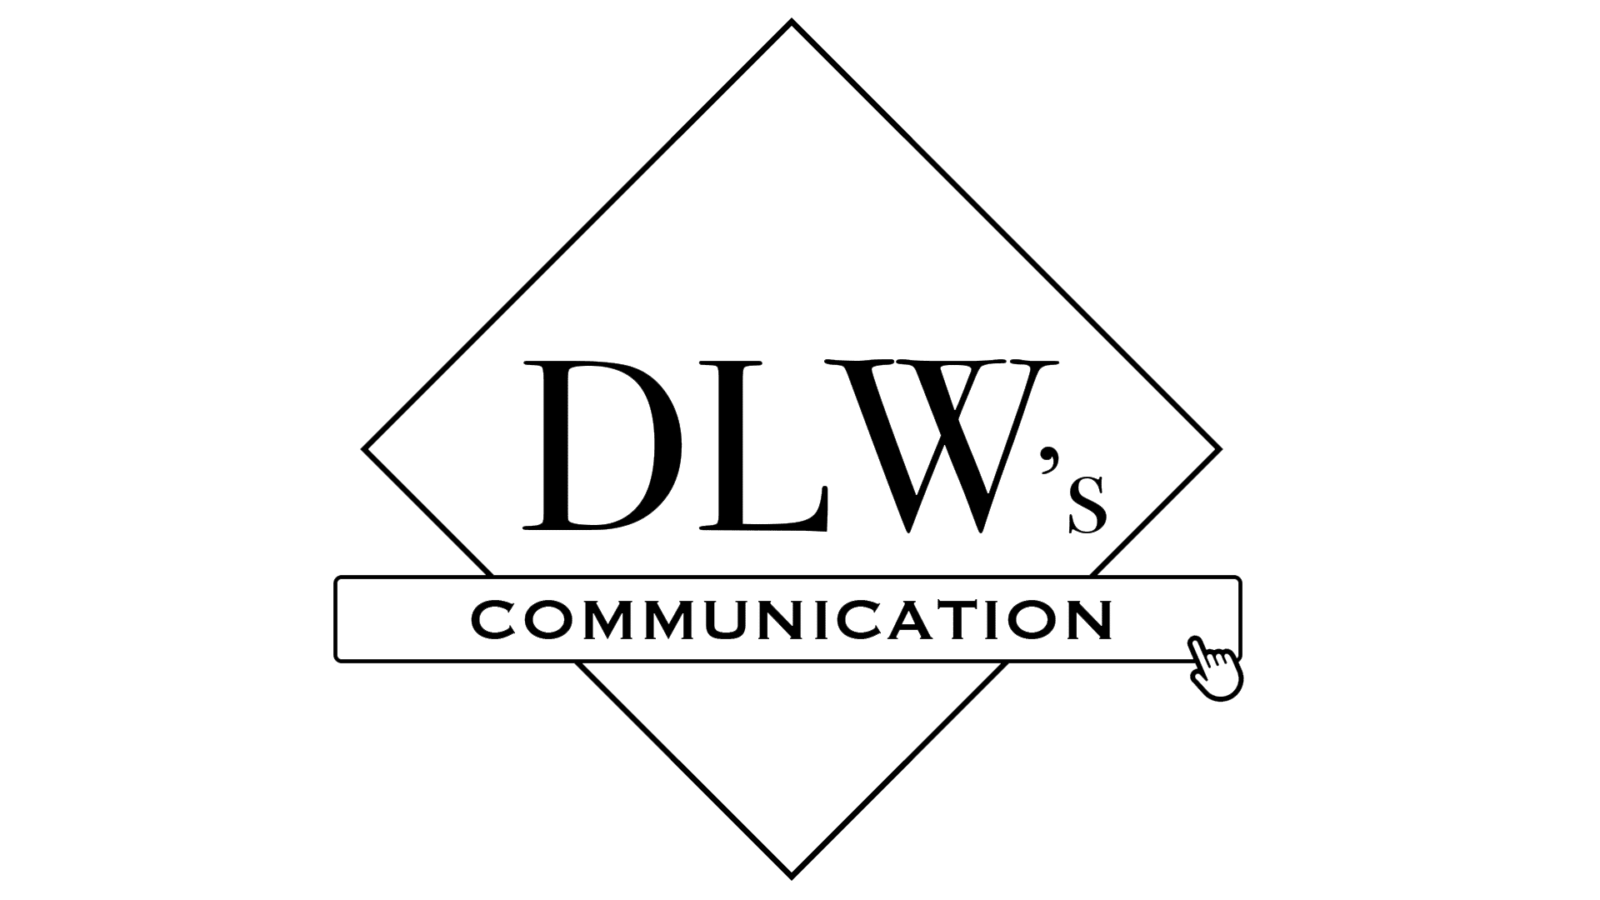 DLW's Communication